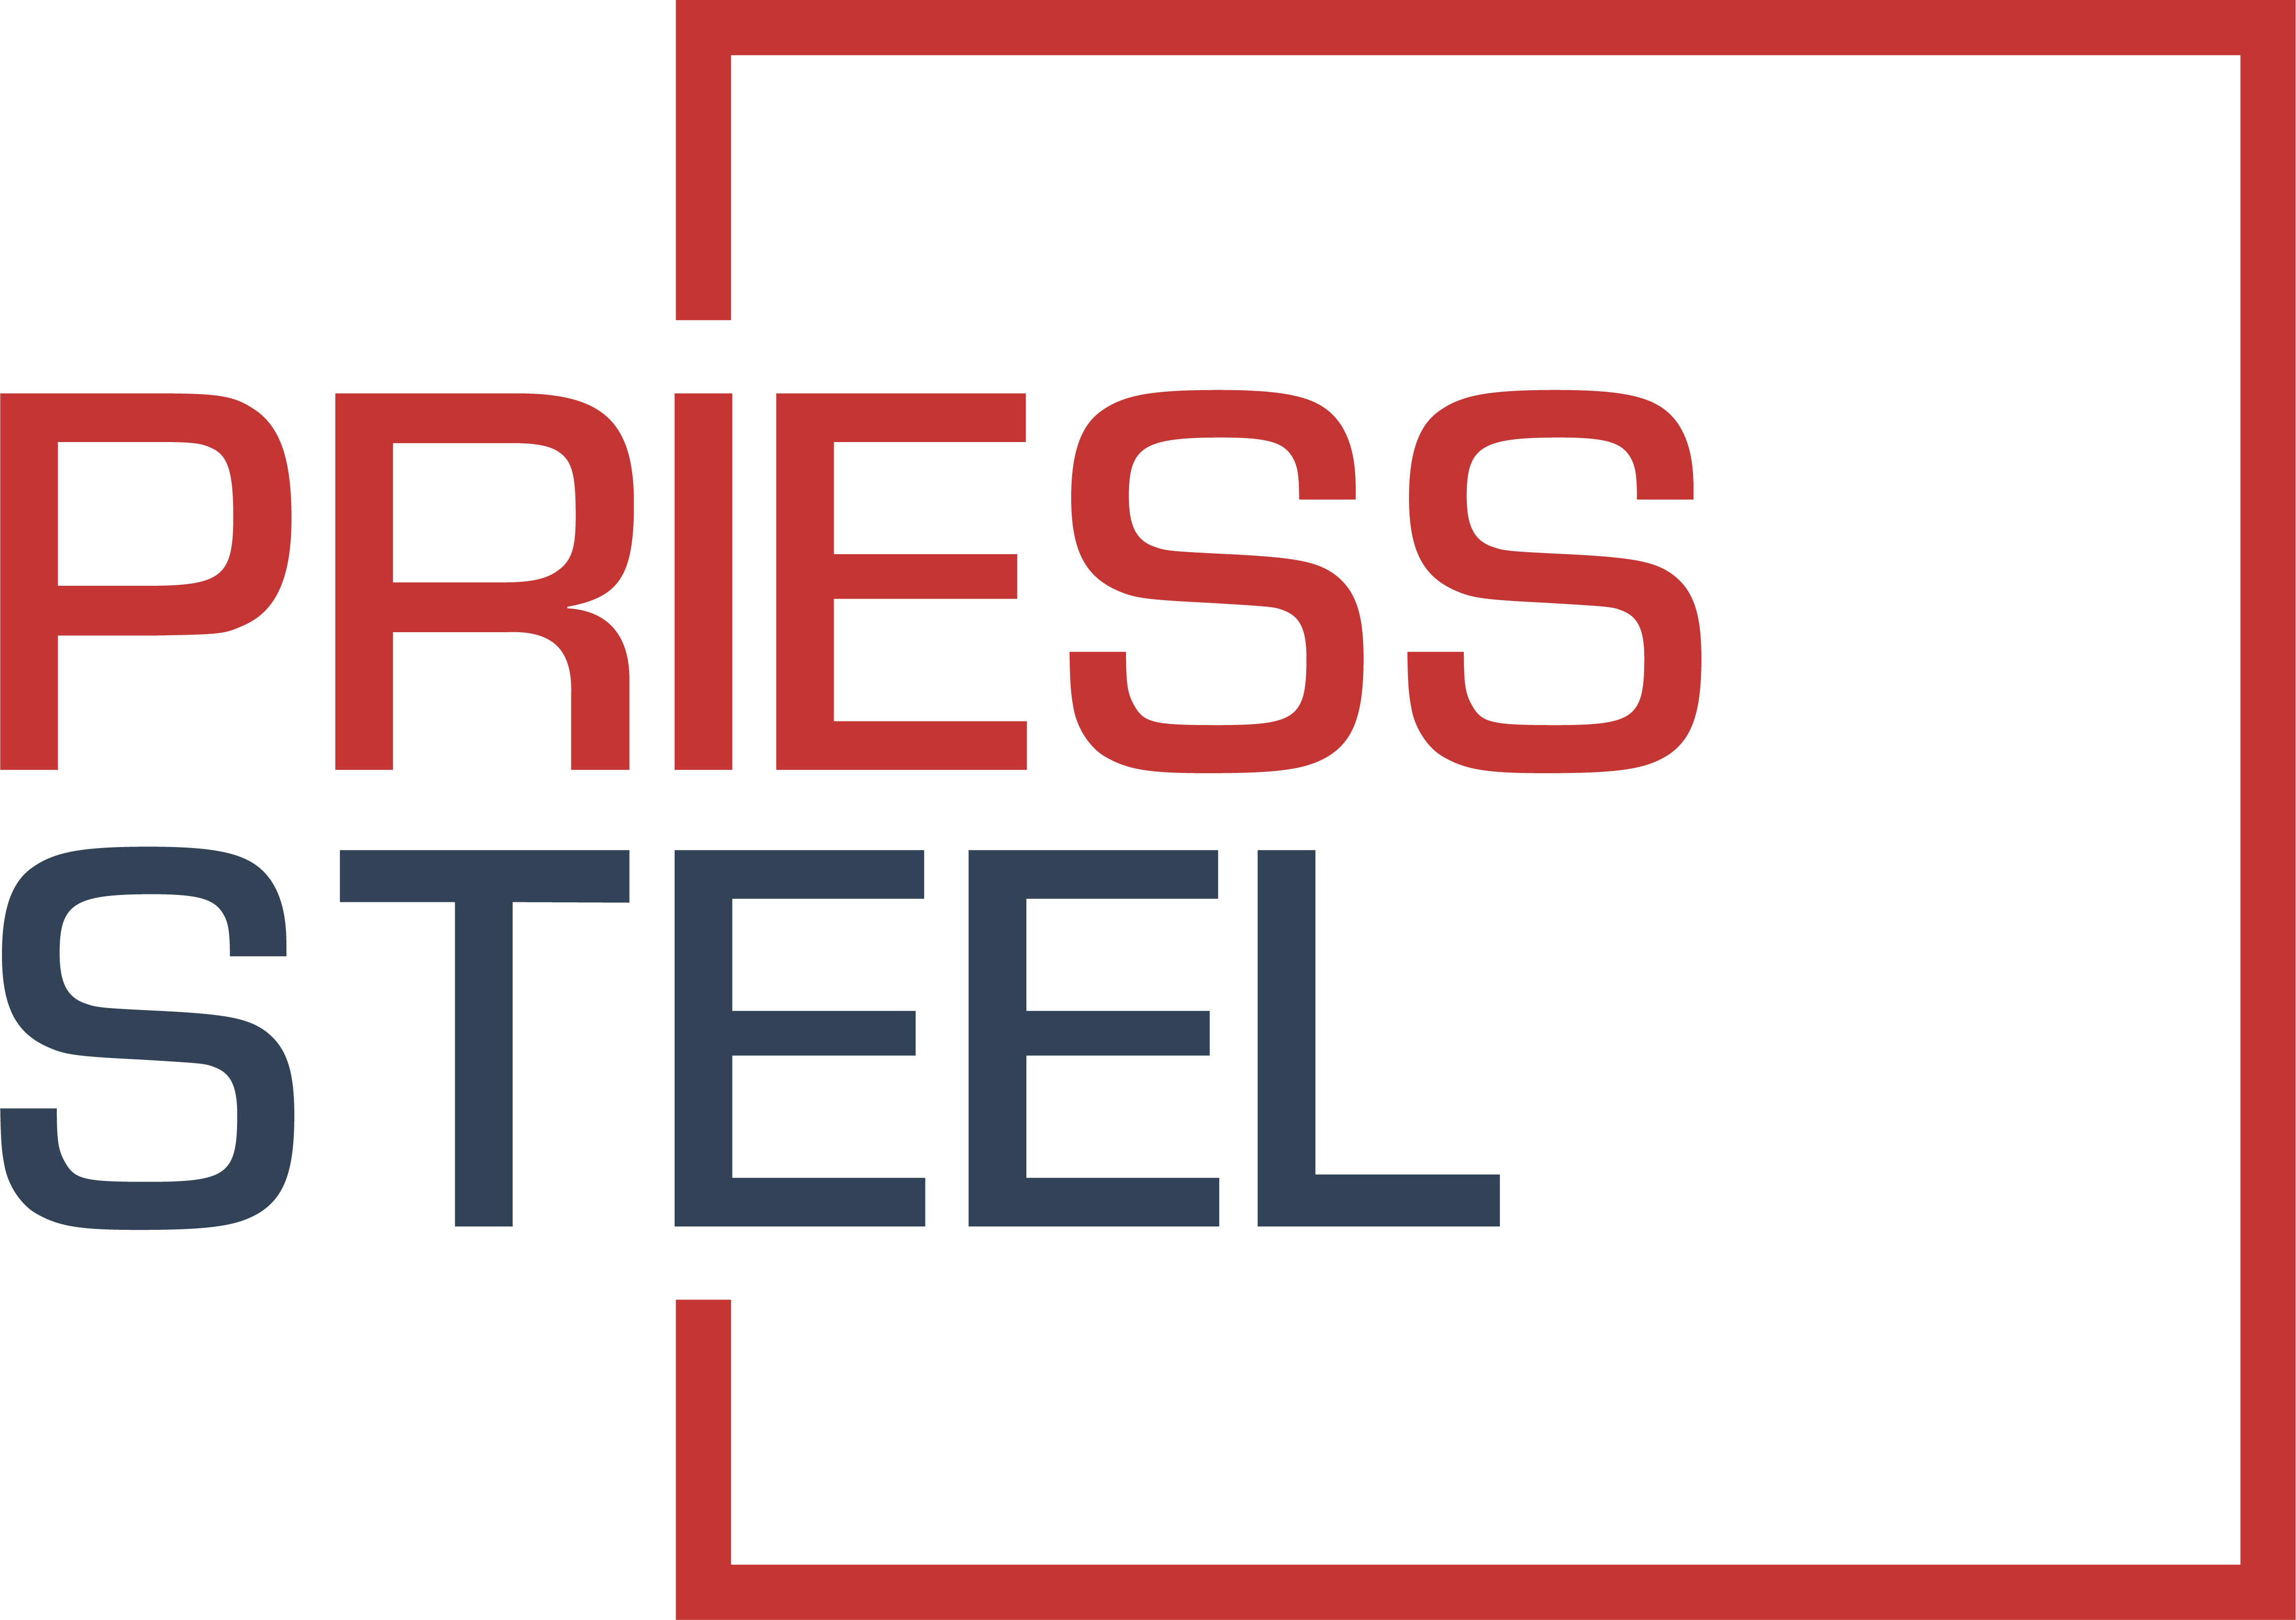 Priess-steel-logo-red-greyblue